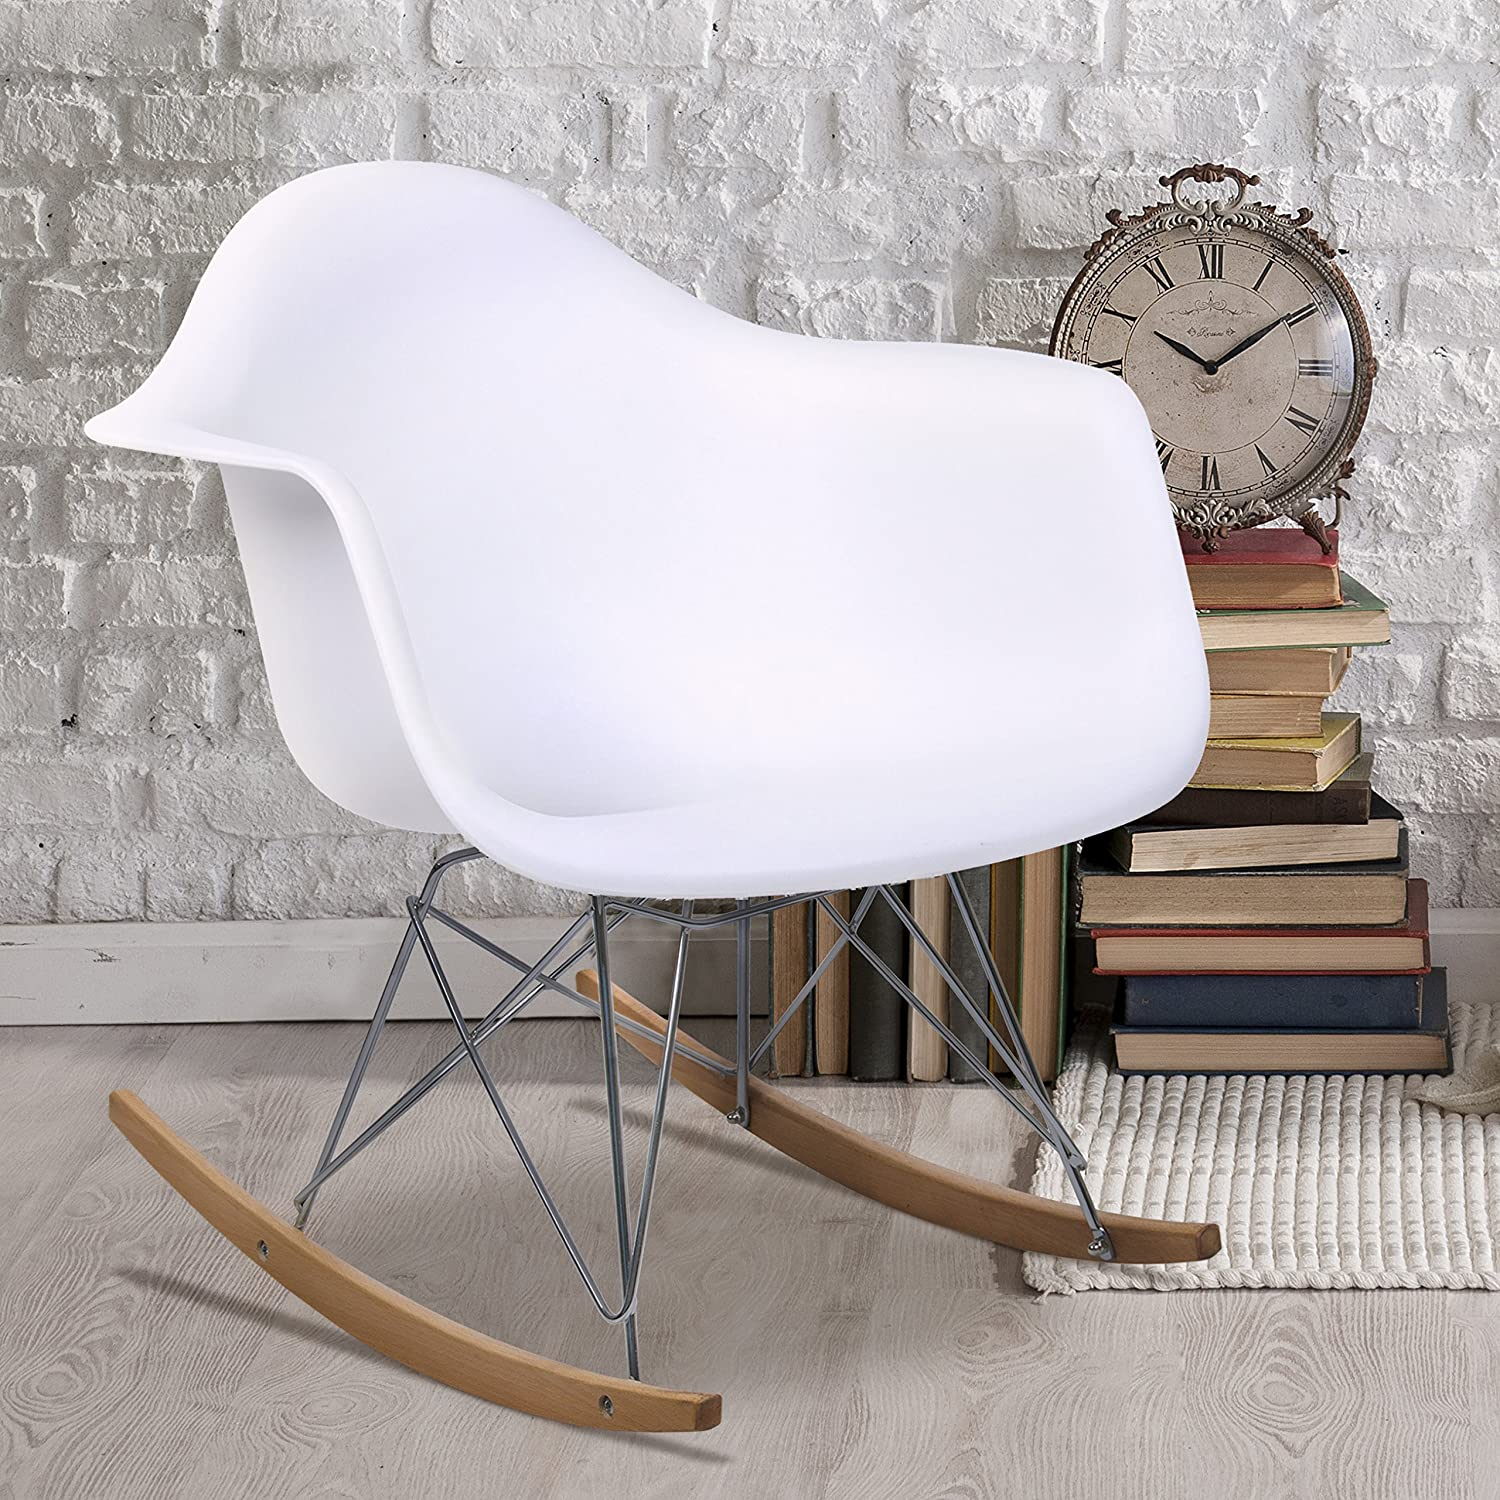 Amazon com  Best Choice Products Eames RAR Style Mid Century Modern Molded  Plastic Rocking Rocker Shell Arm Chair  Home   Kitchen. Amazon com  Best Choice Products Eames RAR Style Mid Century